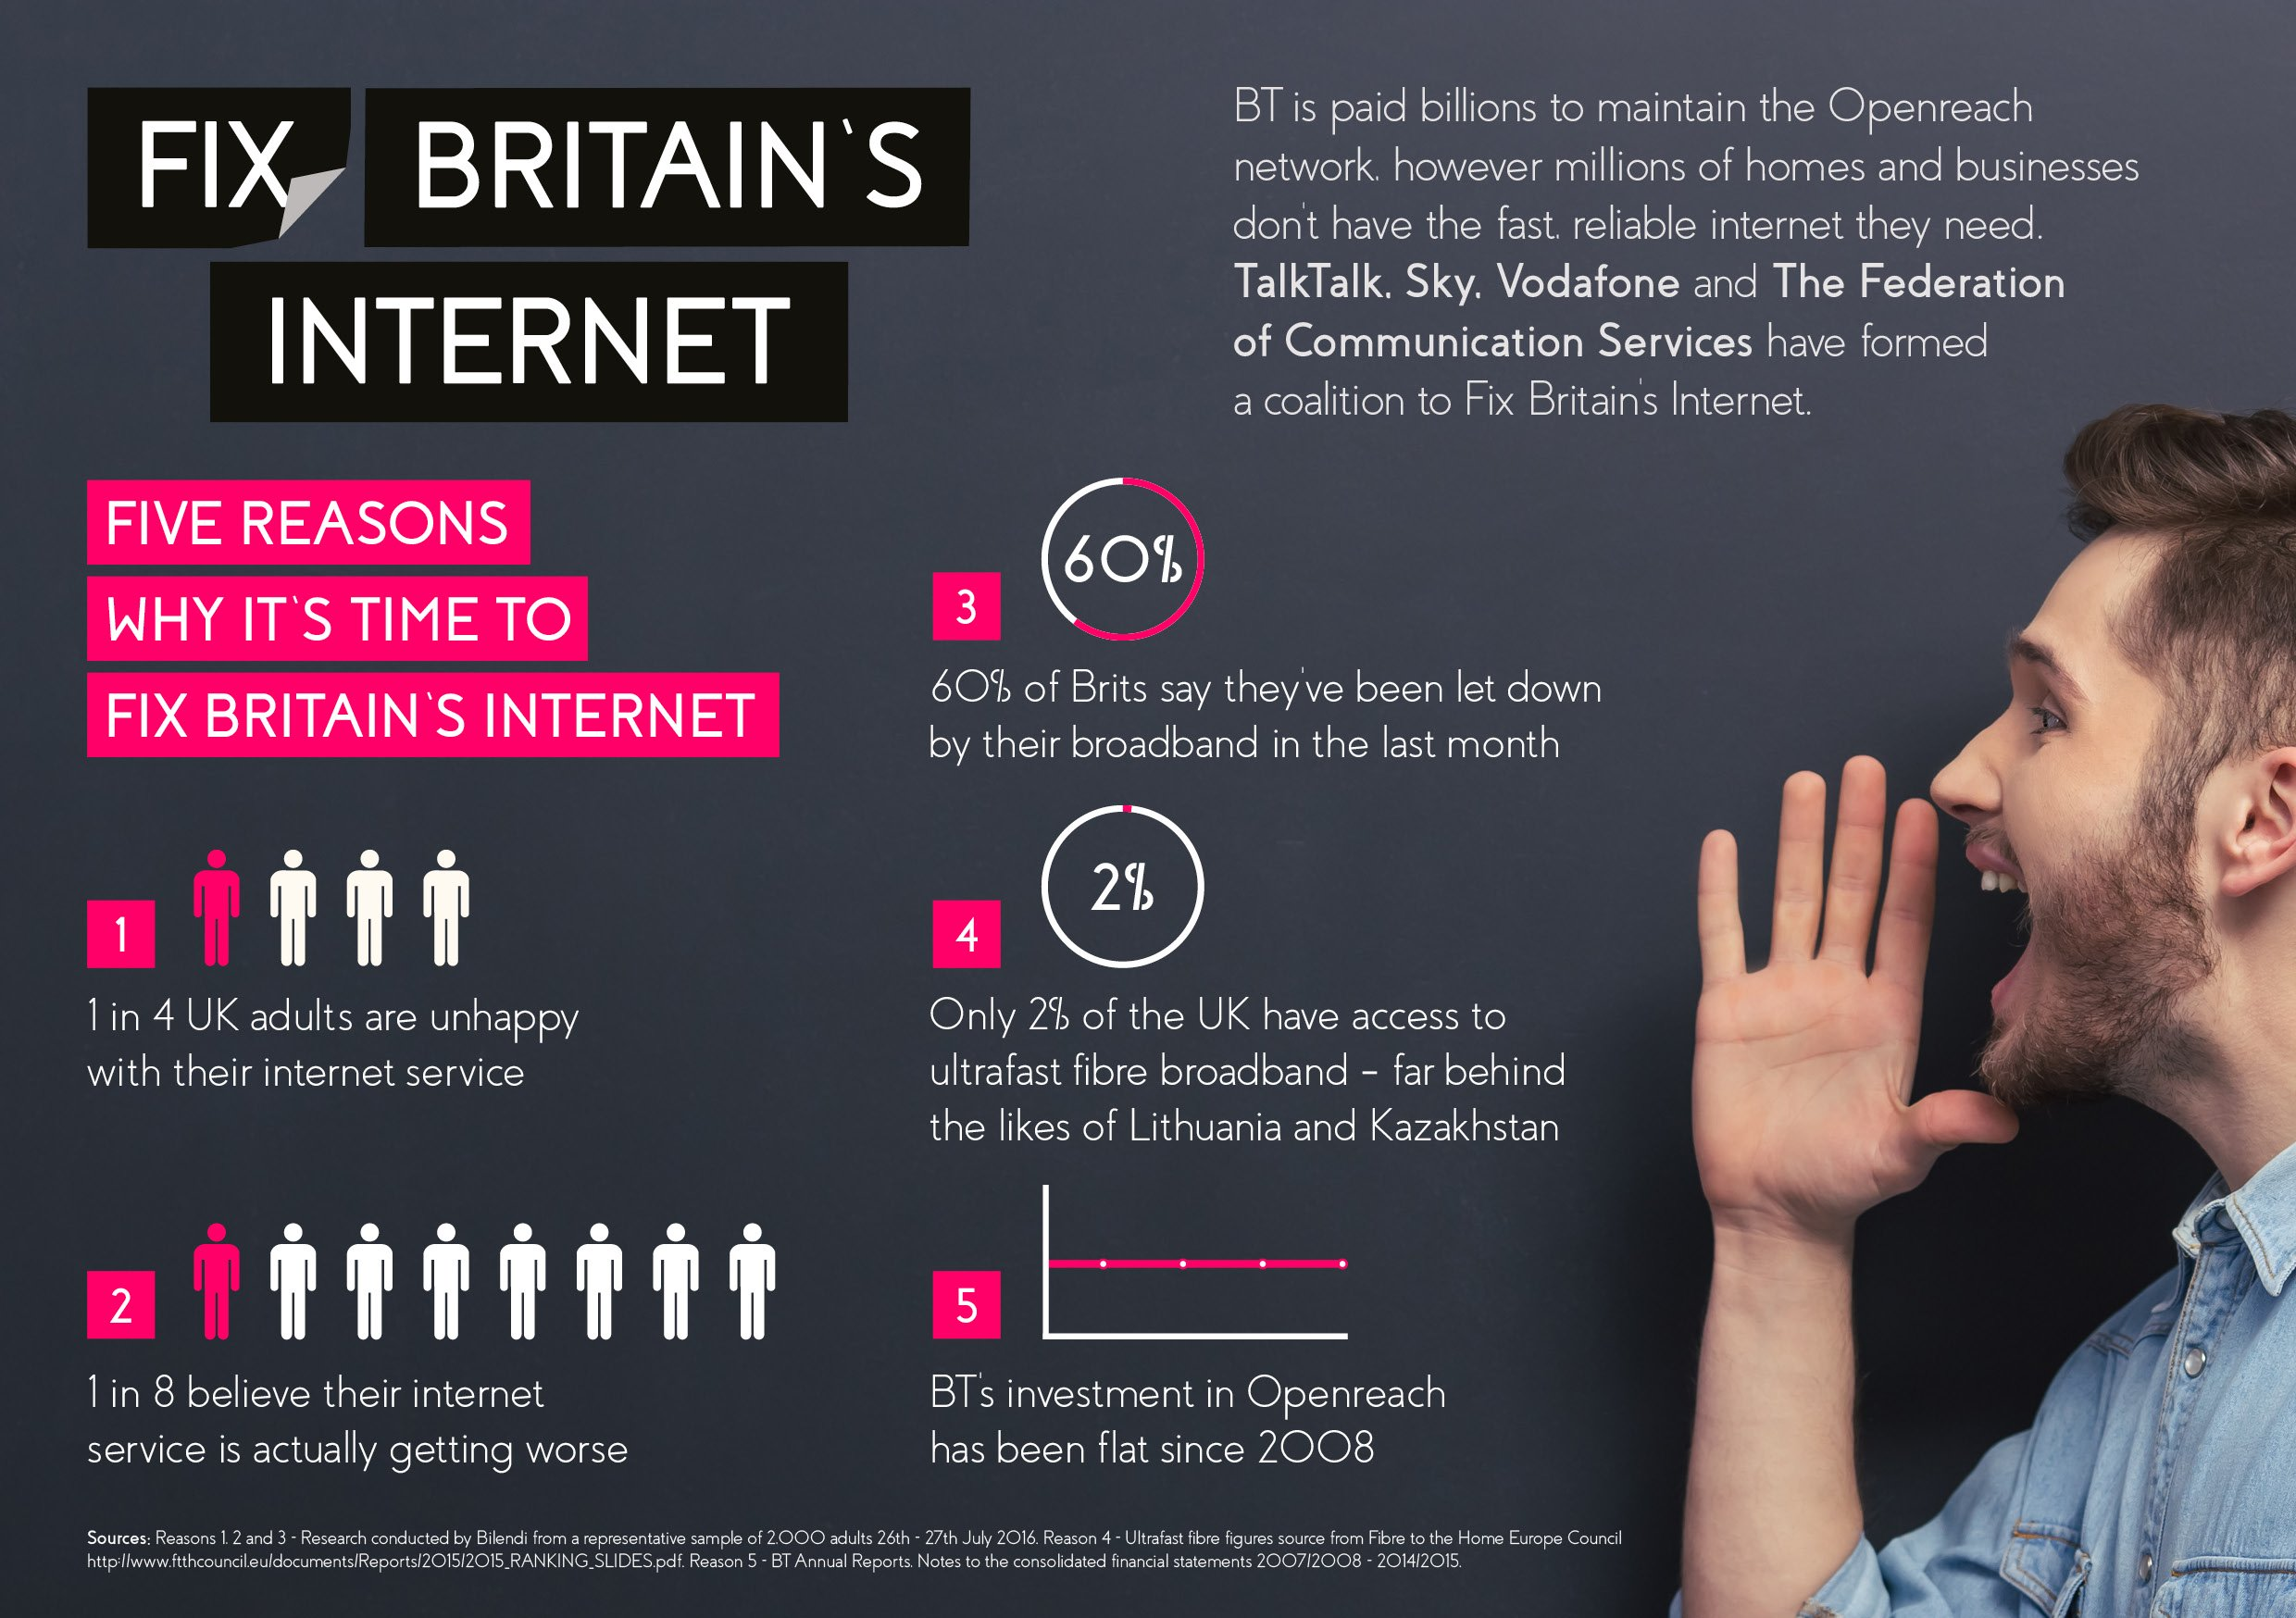 Five reasons to Fix Britain's Internet